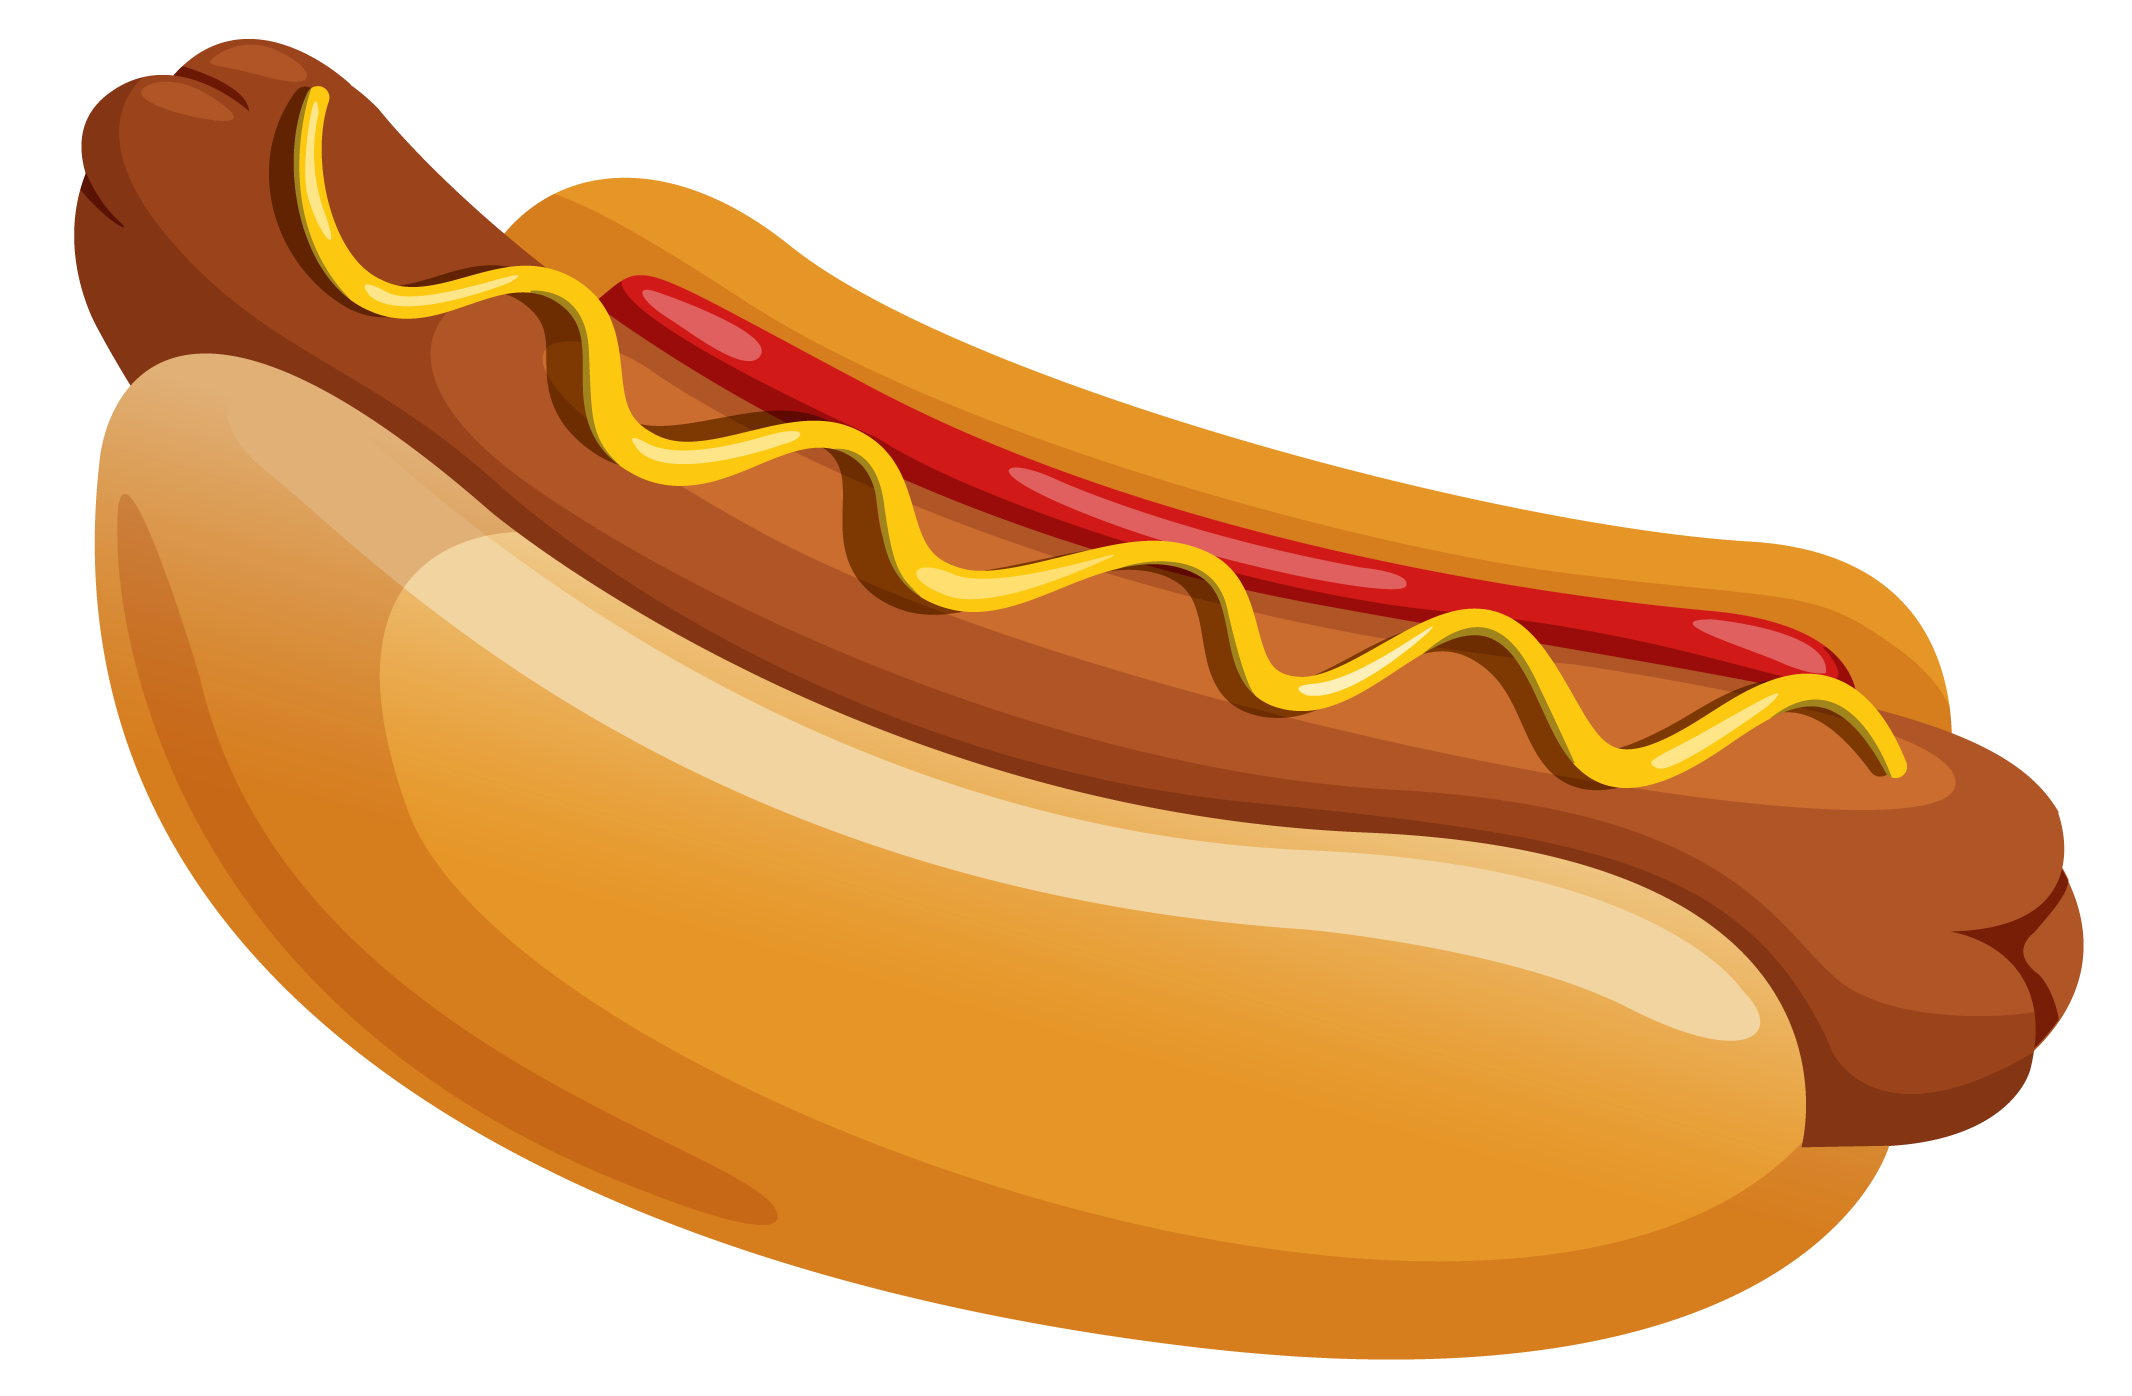 Hot Dog PNG Free Download image #46892